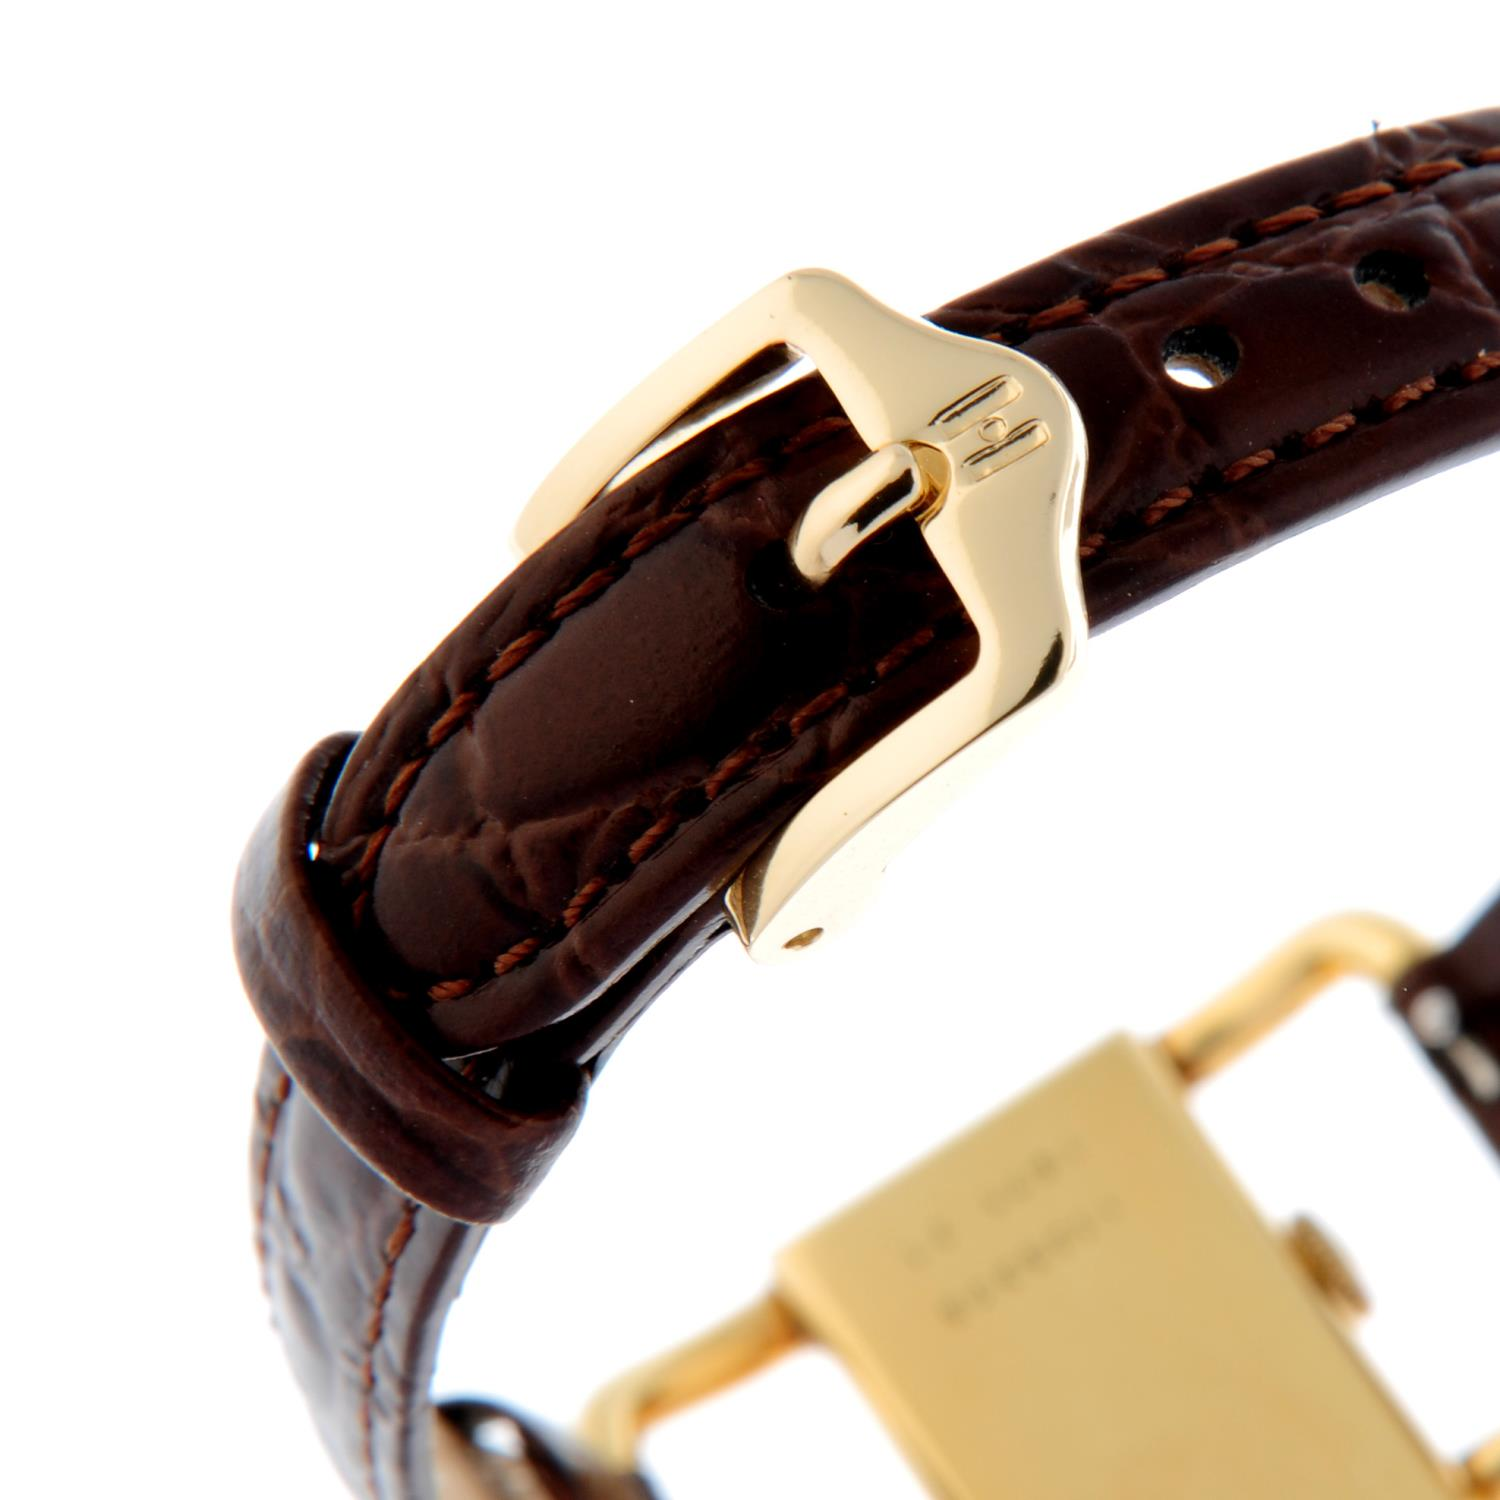 JAEGER-LECOULTRE - a wrist watch. - Image 2 of 4